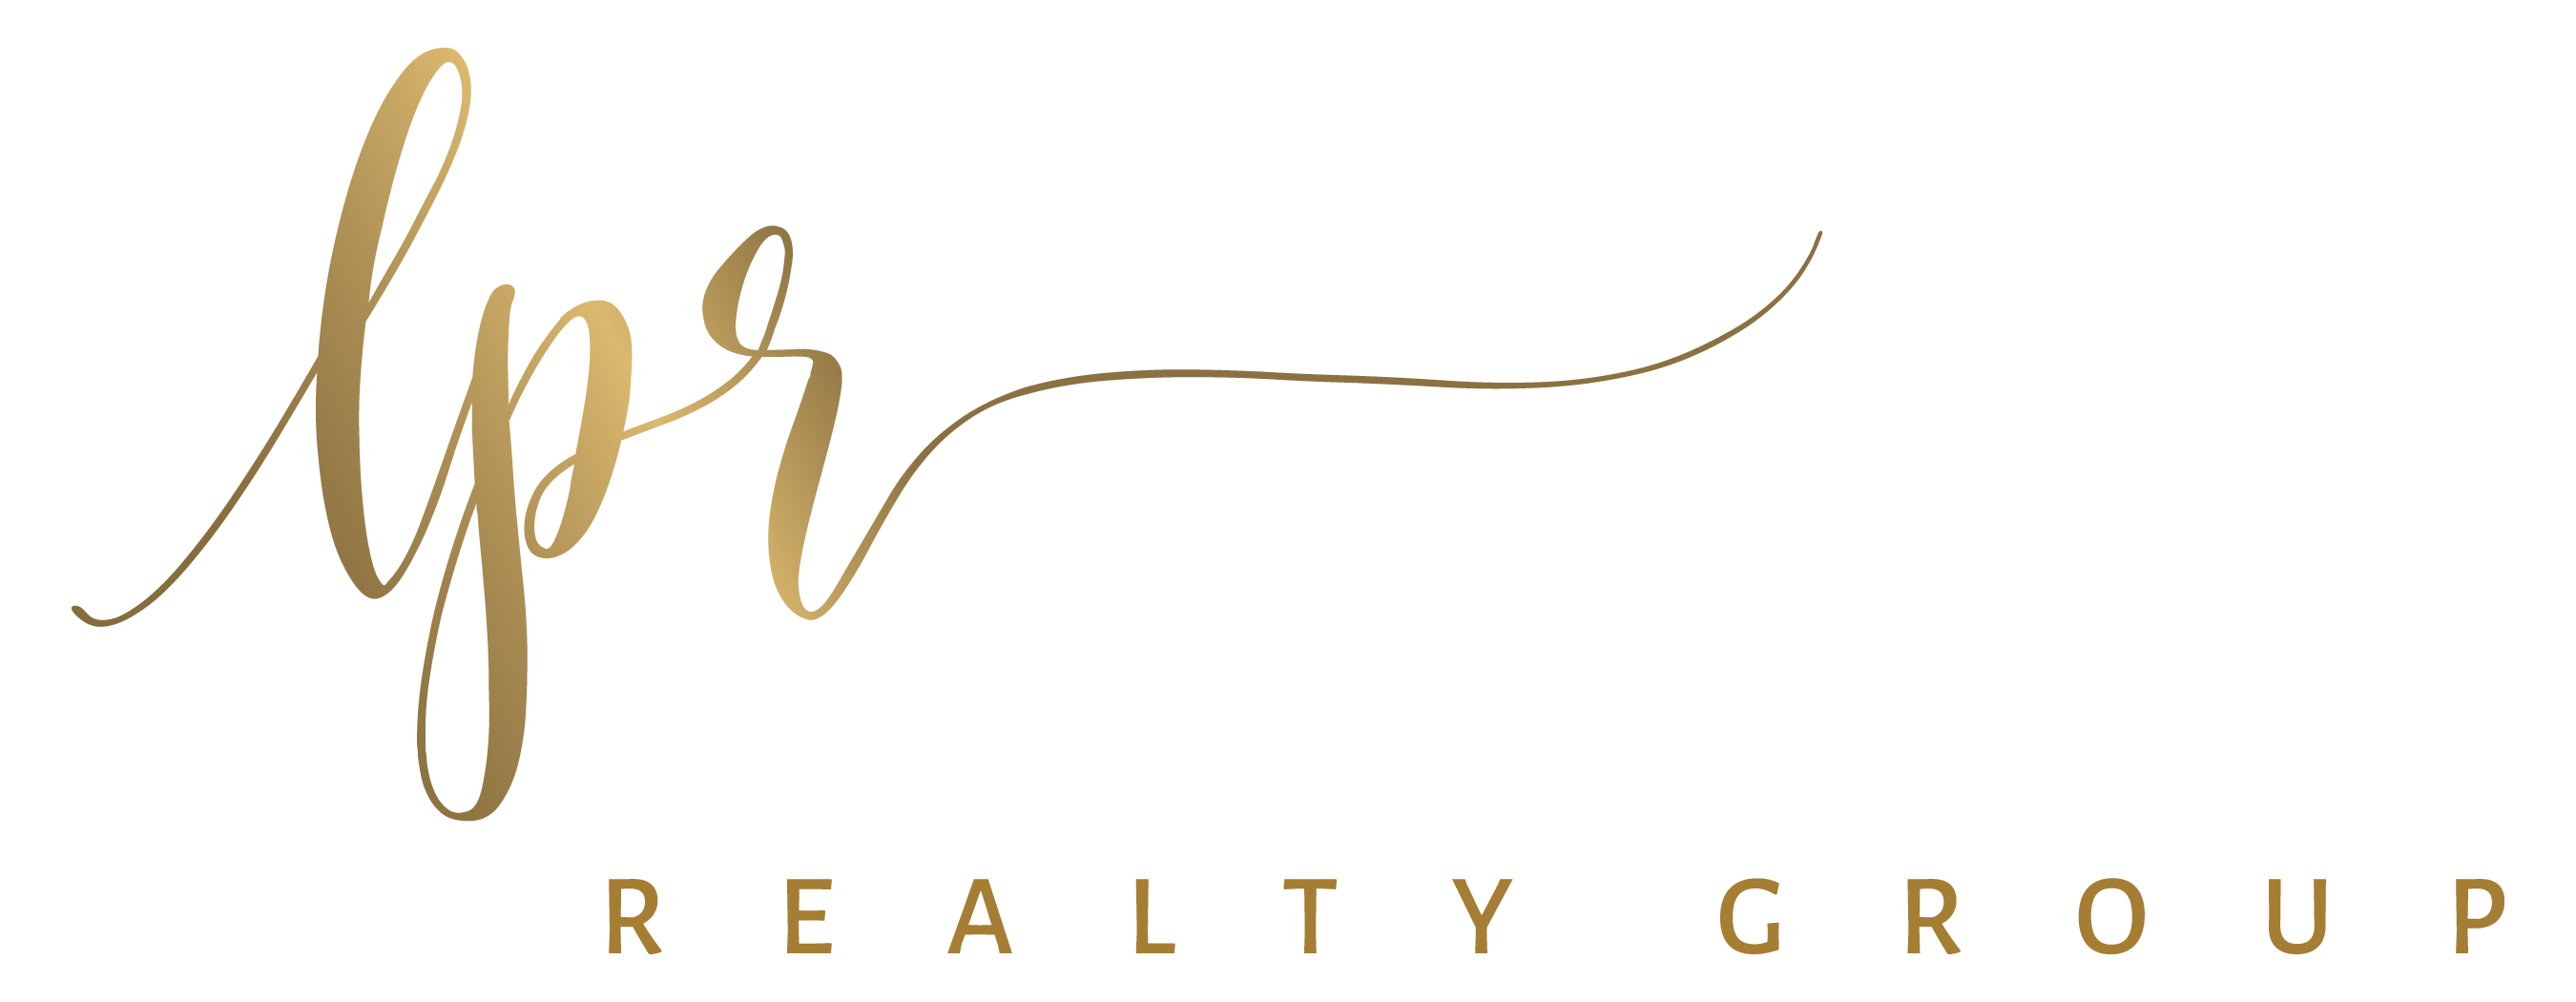 Kelly Pearson | Luxe Premier Realty Group